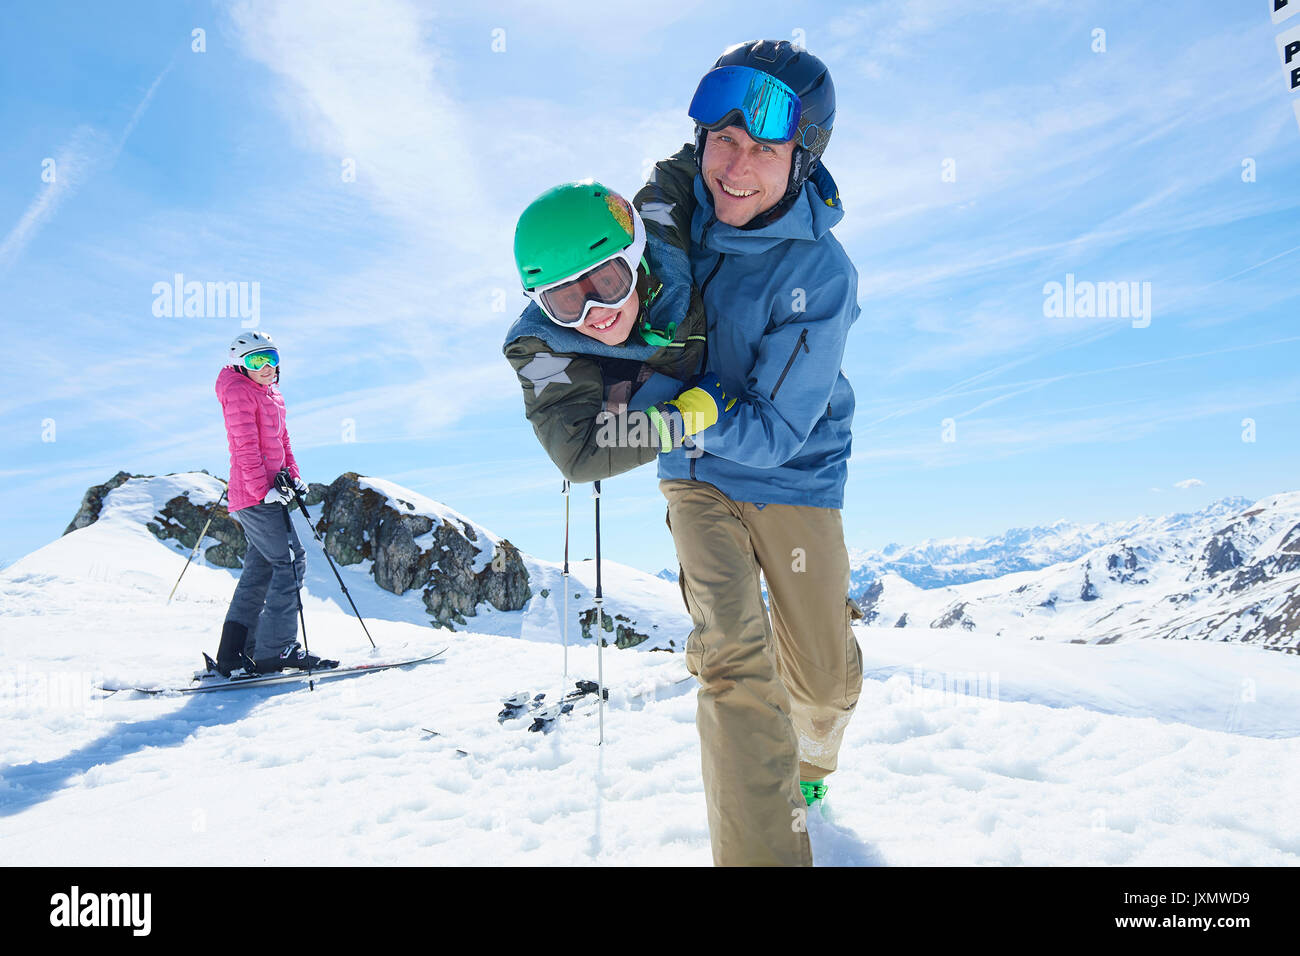 Father and son playing, Hintertux, Tirol, Austria - Stock Image